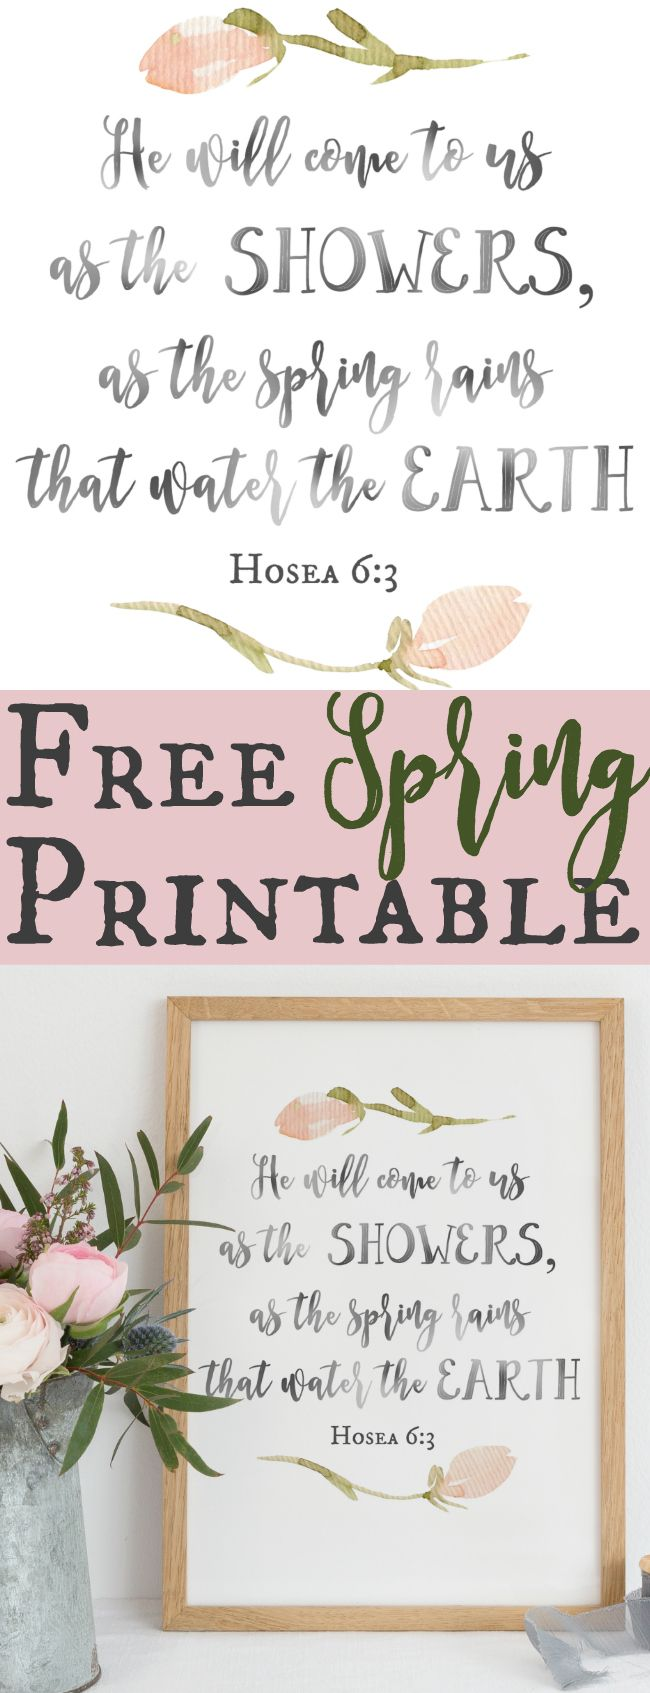 Free Spring Printable. He will come to us as the showers.